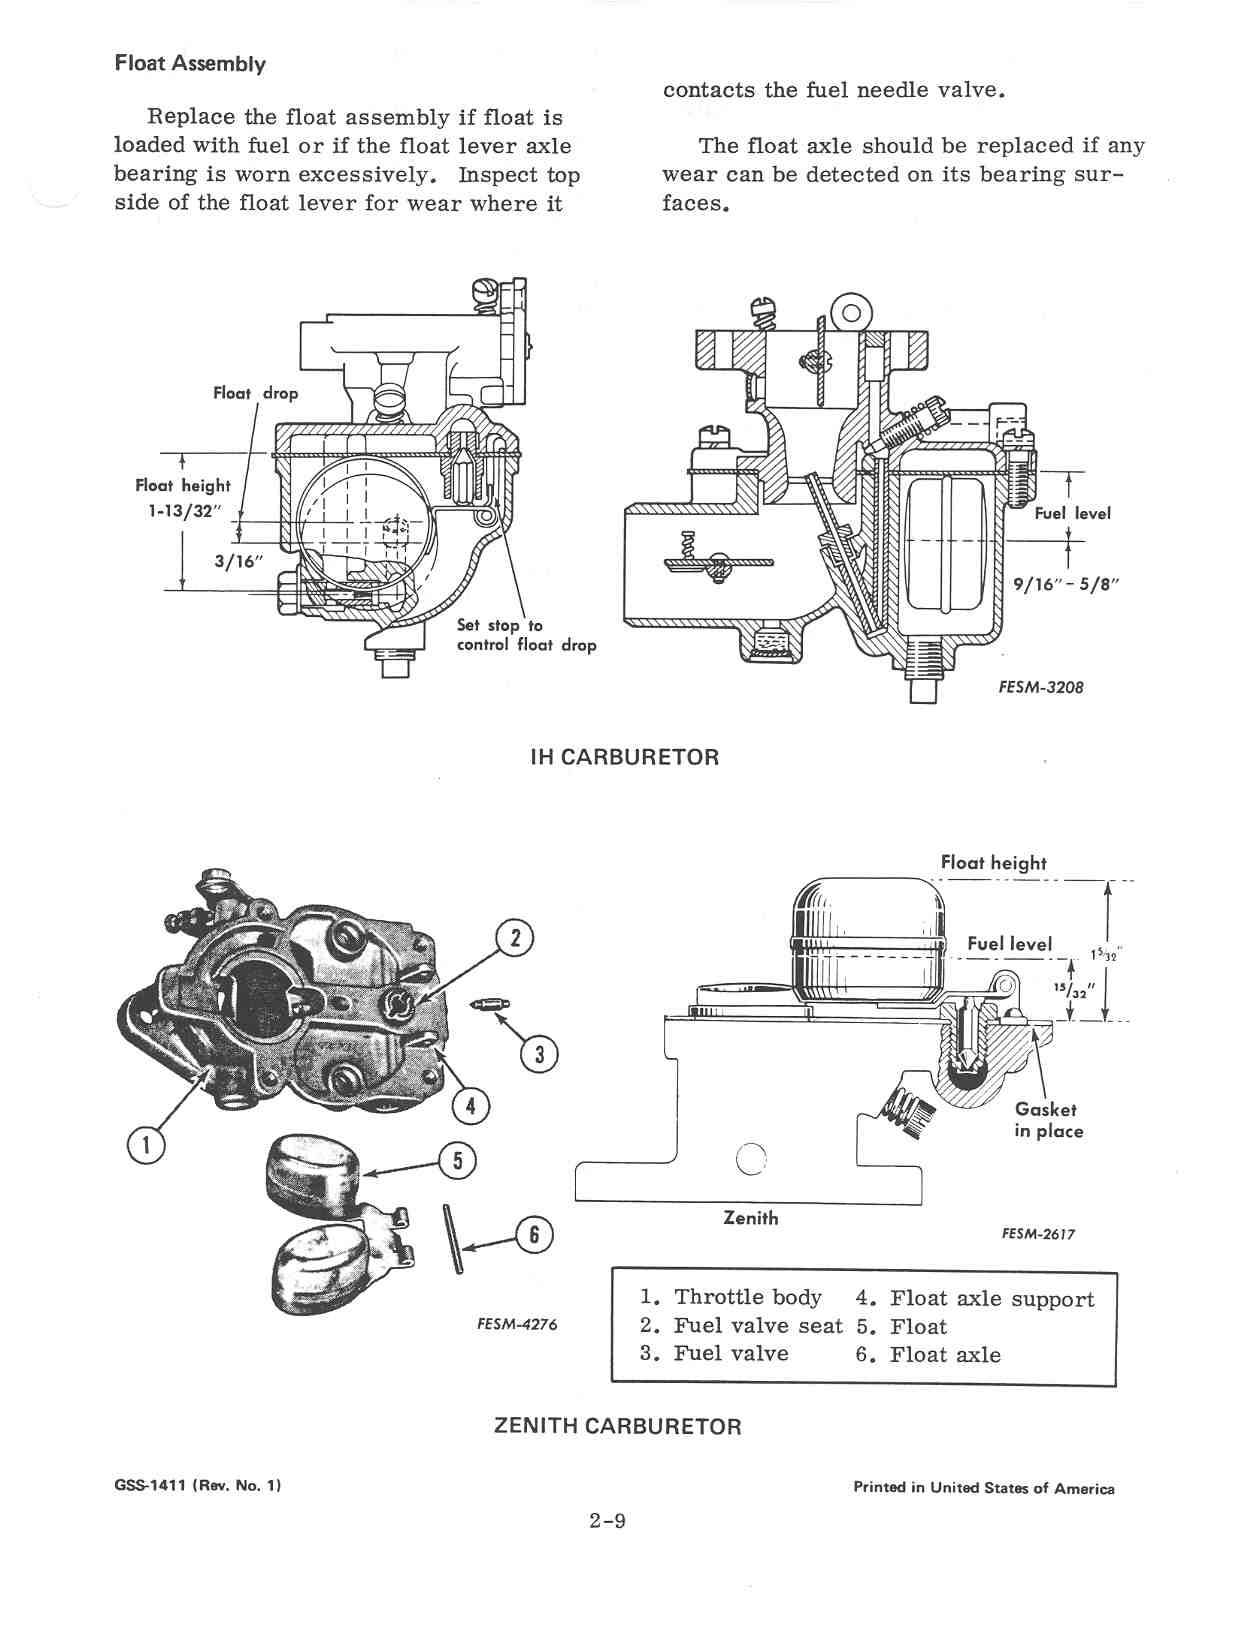 hight resolution of farmall f 20 carburetor diagram wiring diagram origin farmall h carburetor diagram farmall c carburetor diagram